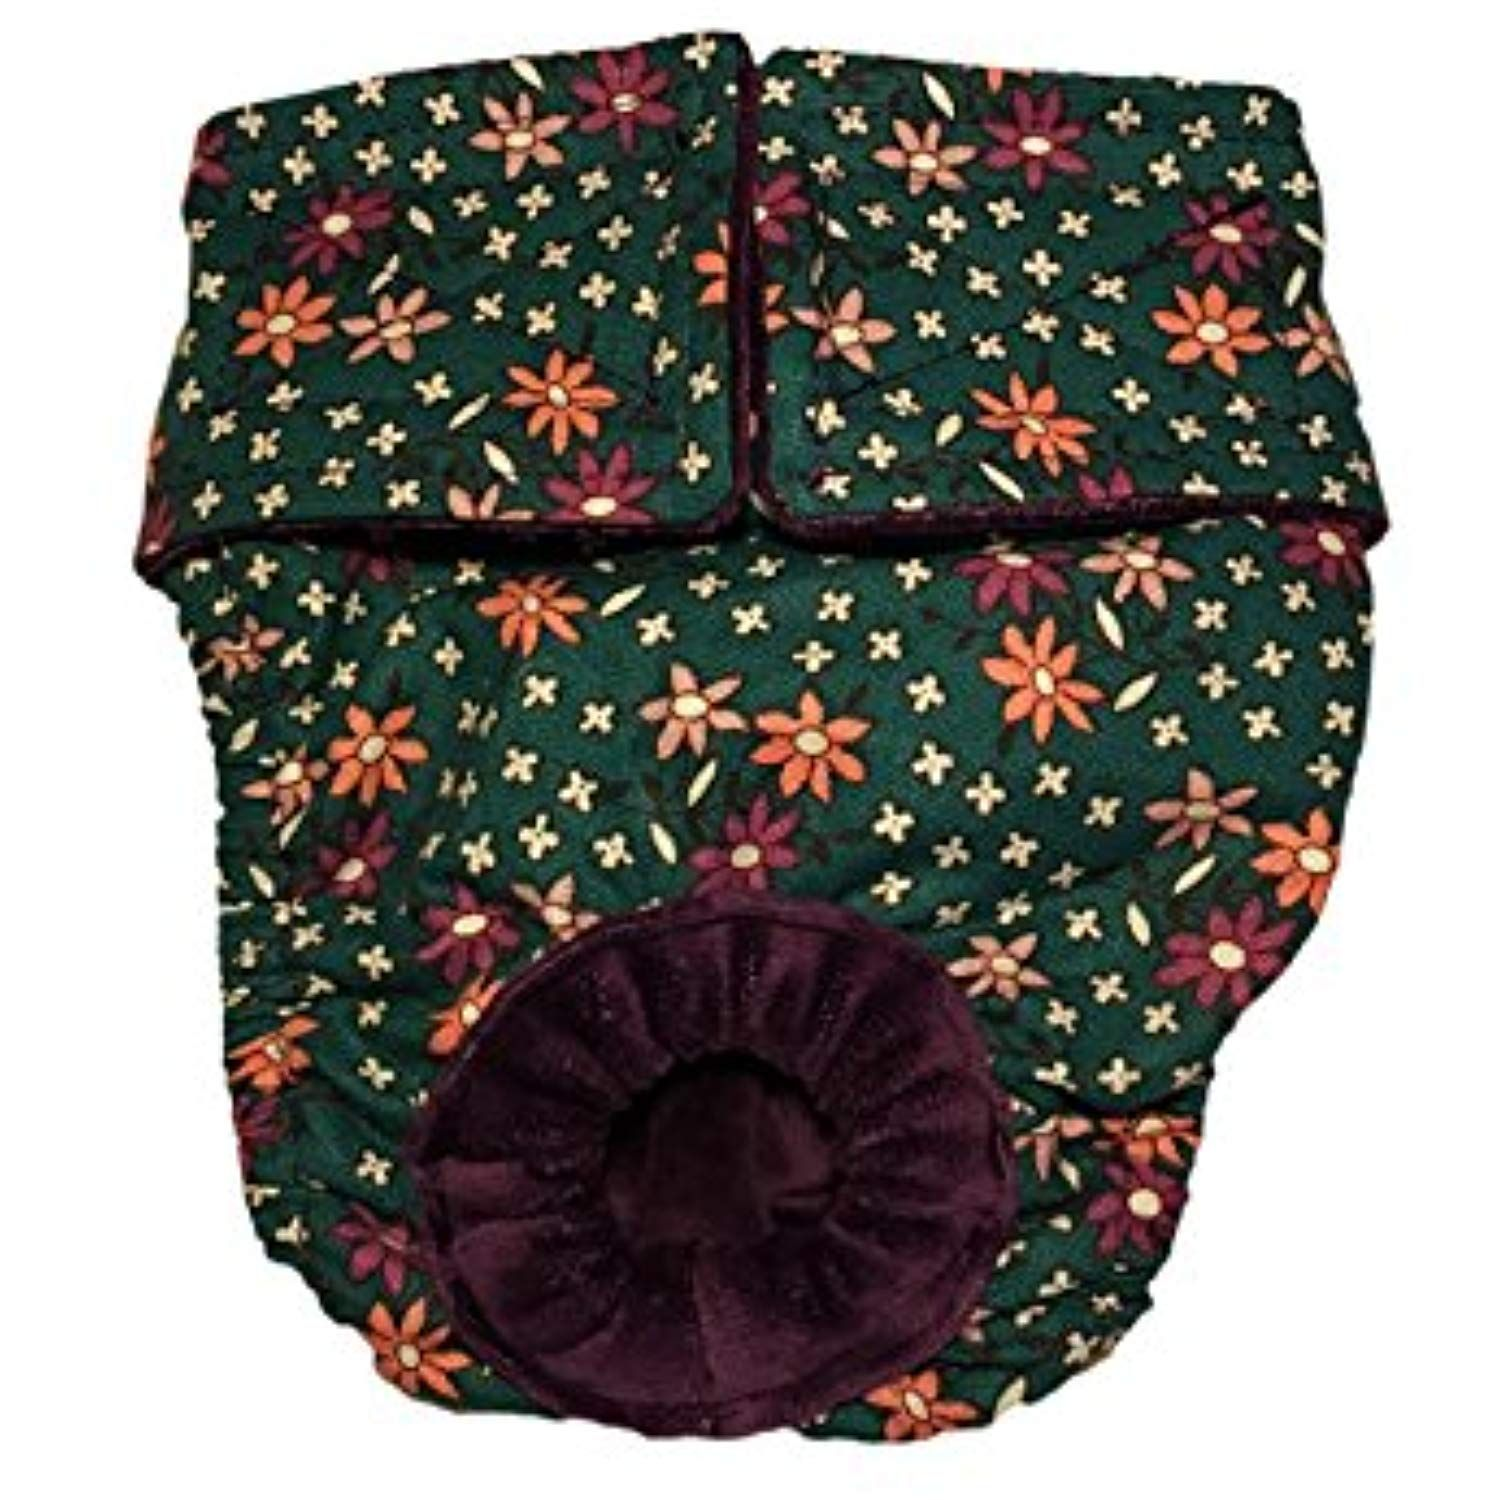 Cat diaper made in usa flowers on green washable cat